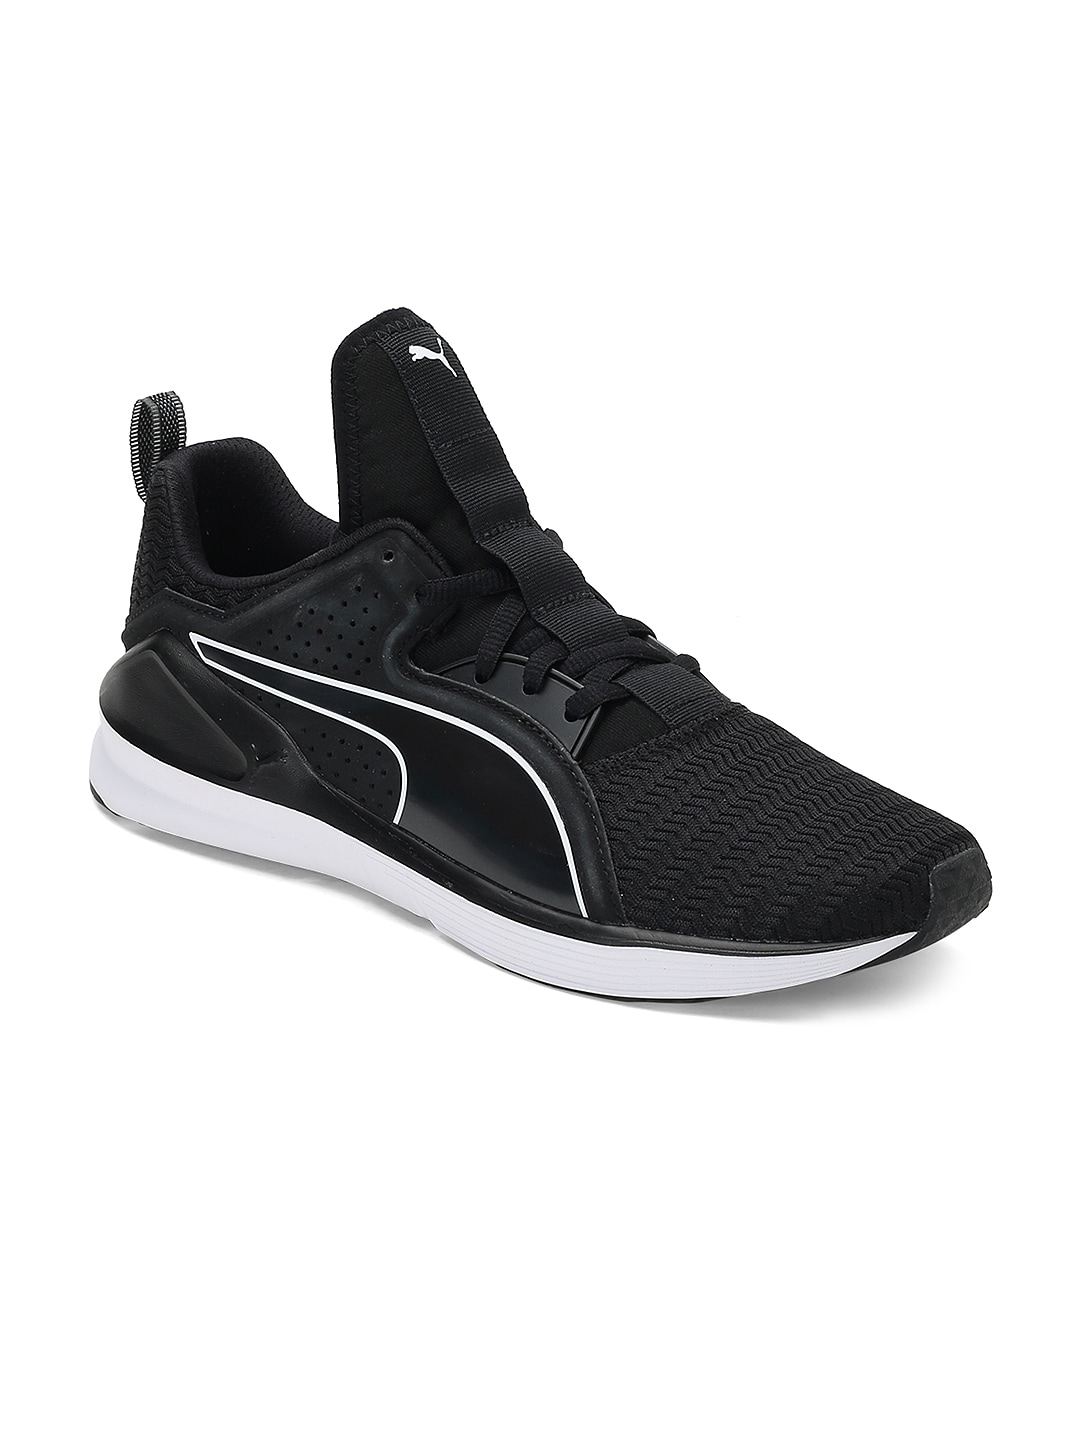 6ad412b0d52 Puma Fierce - Buy Puma Fierce online in India